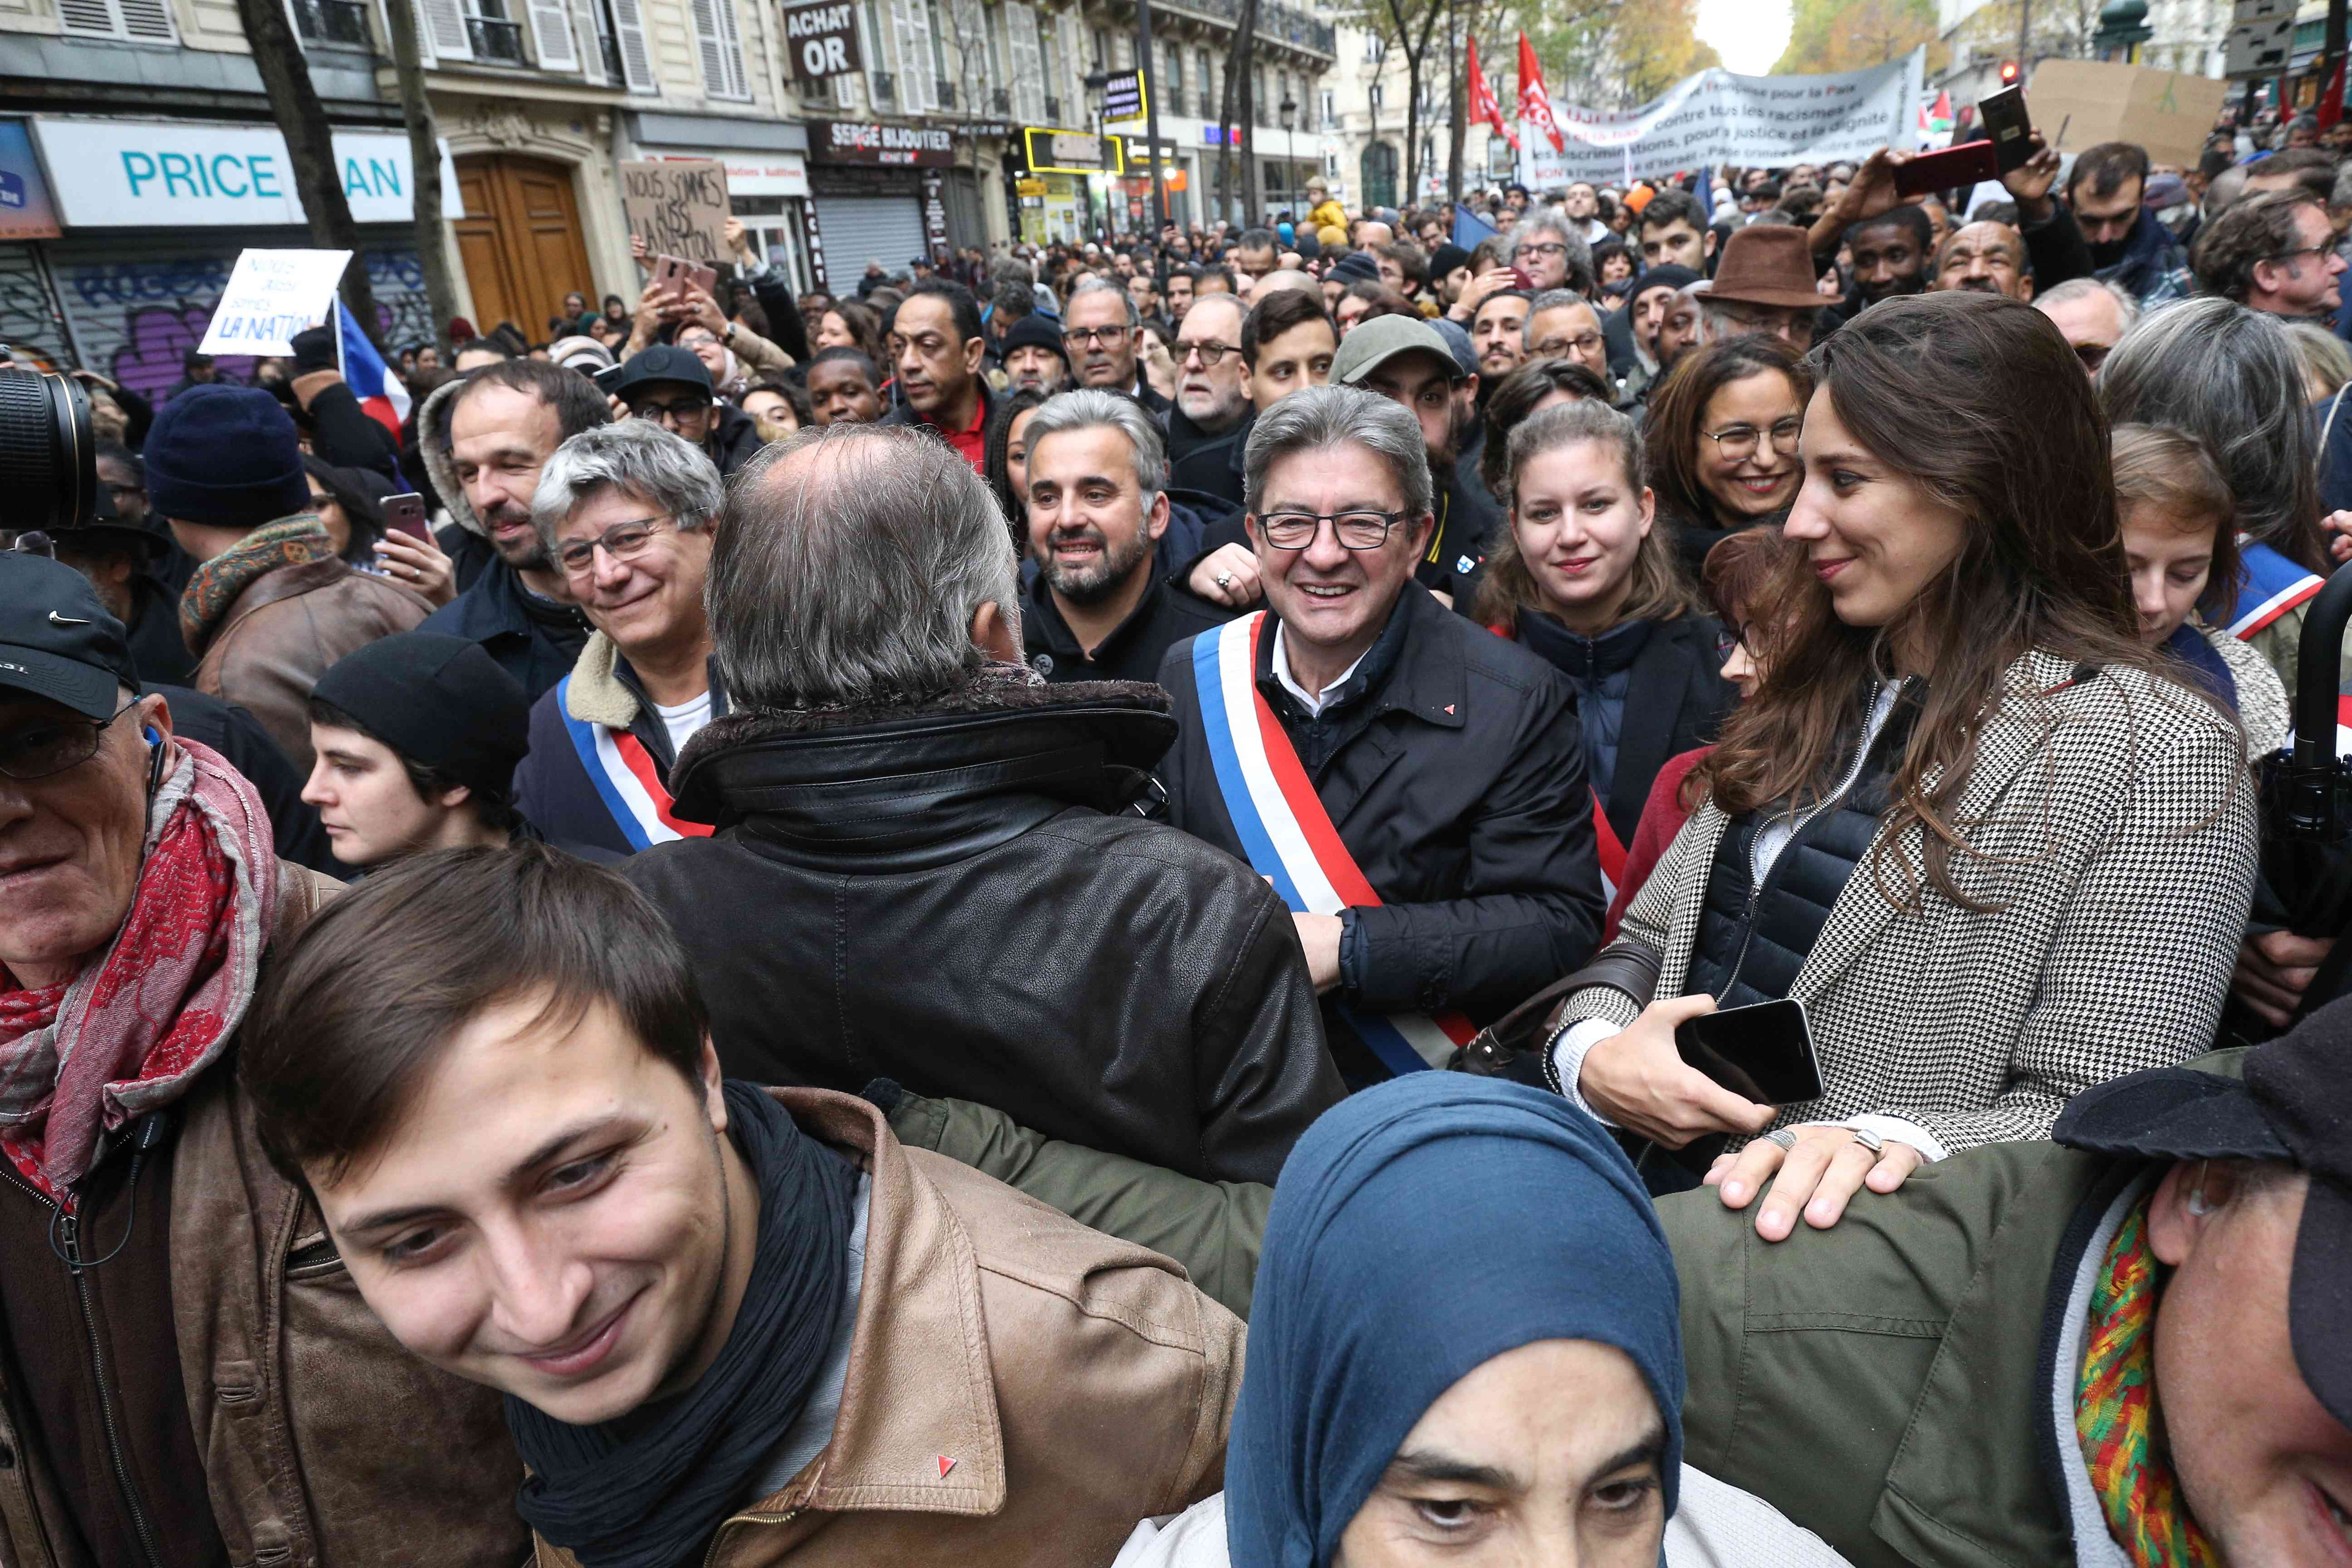 Head of La France Insoumise (LFI) left-wing party Jean-Luc Melenchon (C) takes part in a march near the Gare du Nord, in Paris, on November 10, 2019, to protest against Islamophobia, at the call of several anti-racist activists and collectives.